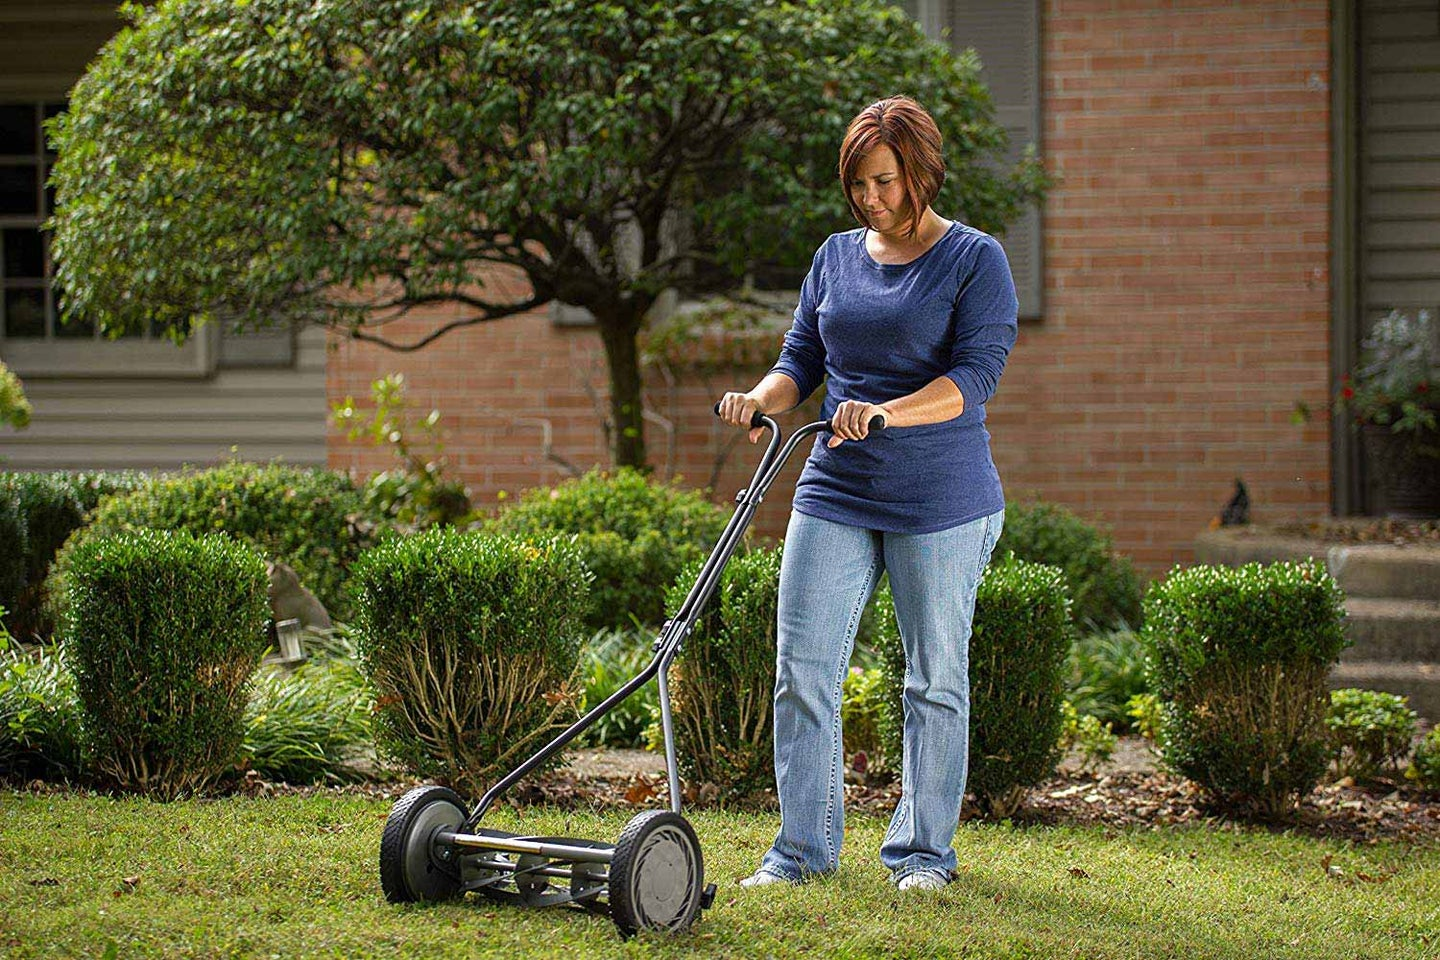 Three Ways to Mow Your Lawn Without Gasoline